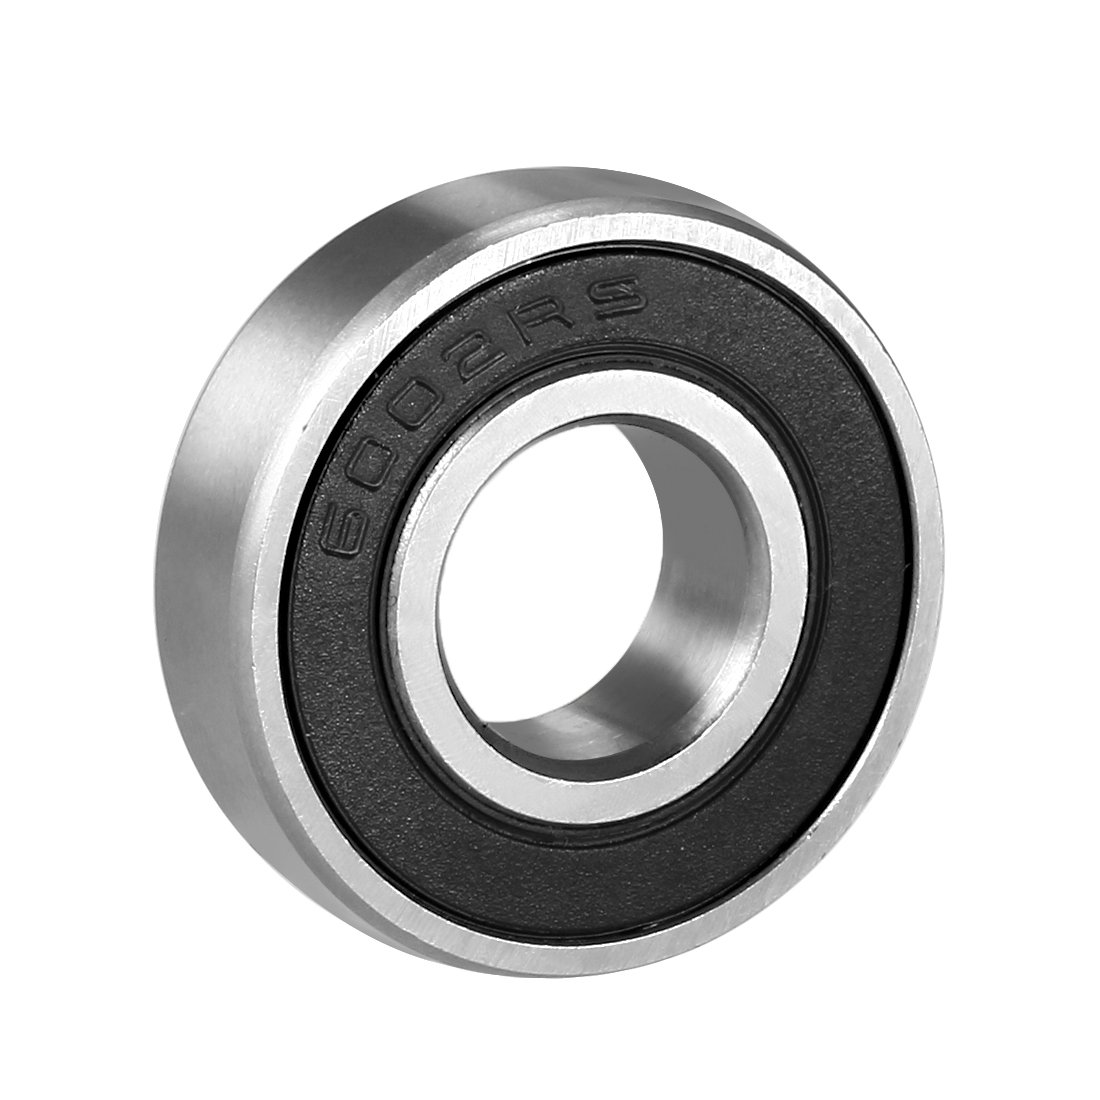 6002-2RS   15x32x9  Ball Bearing Dual Sided Rubber Sealed Deep Groove 4PCS